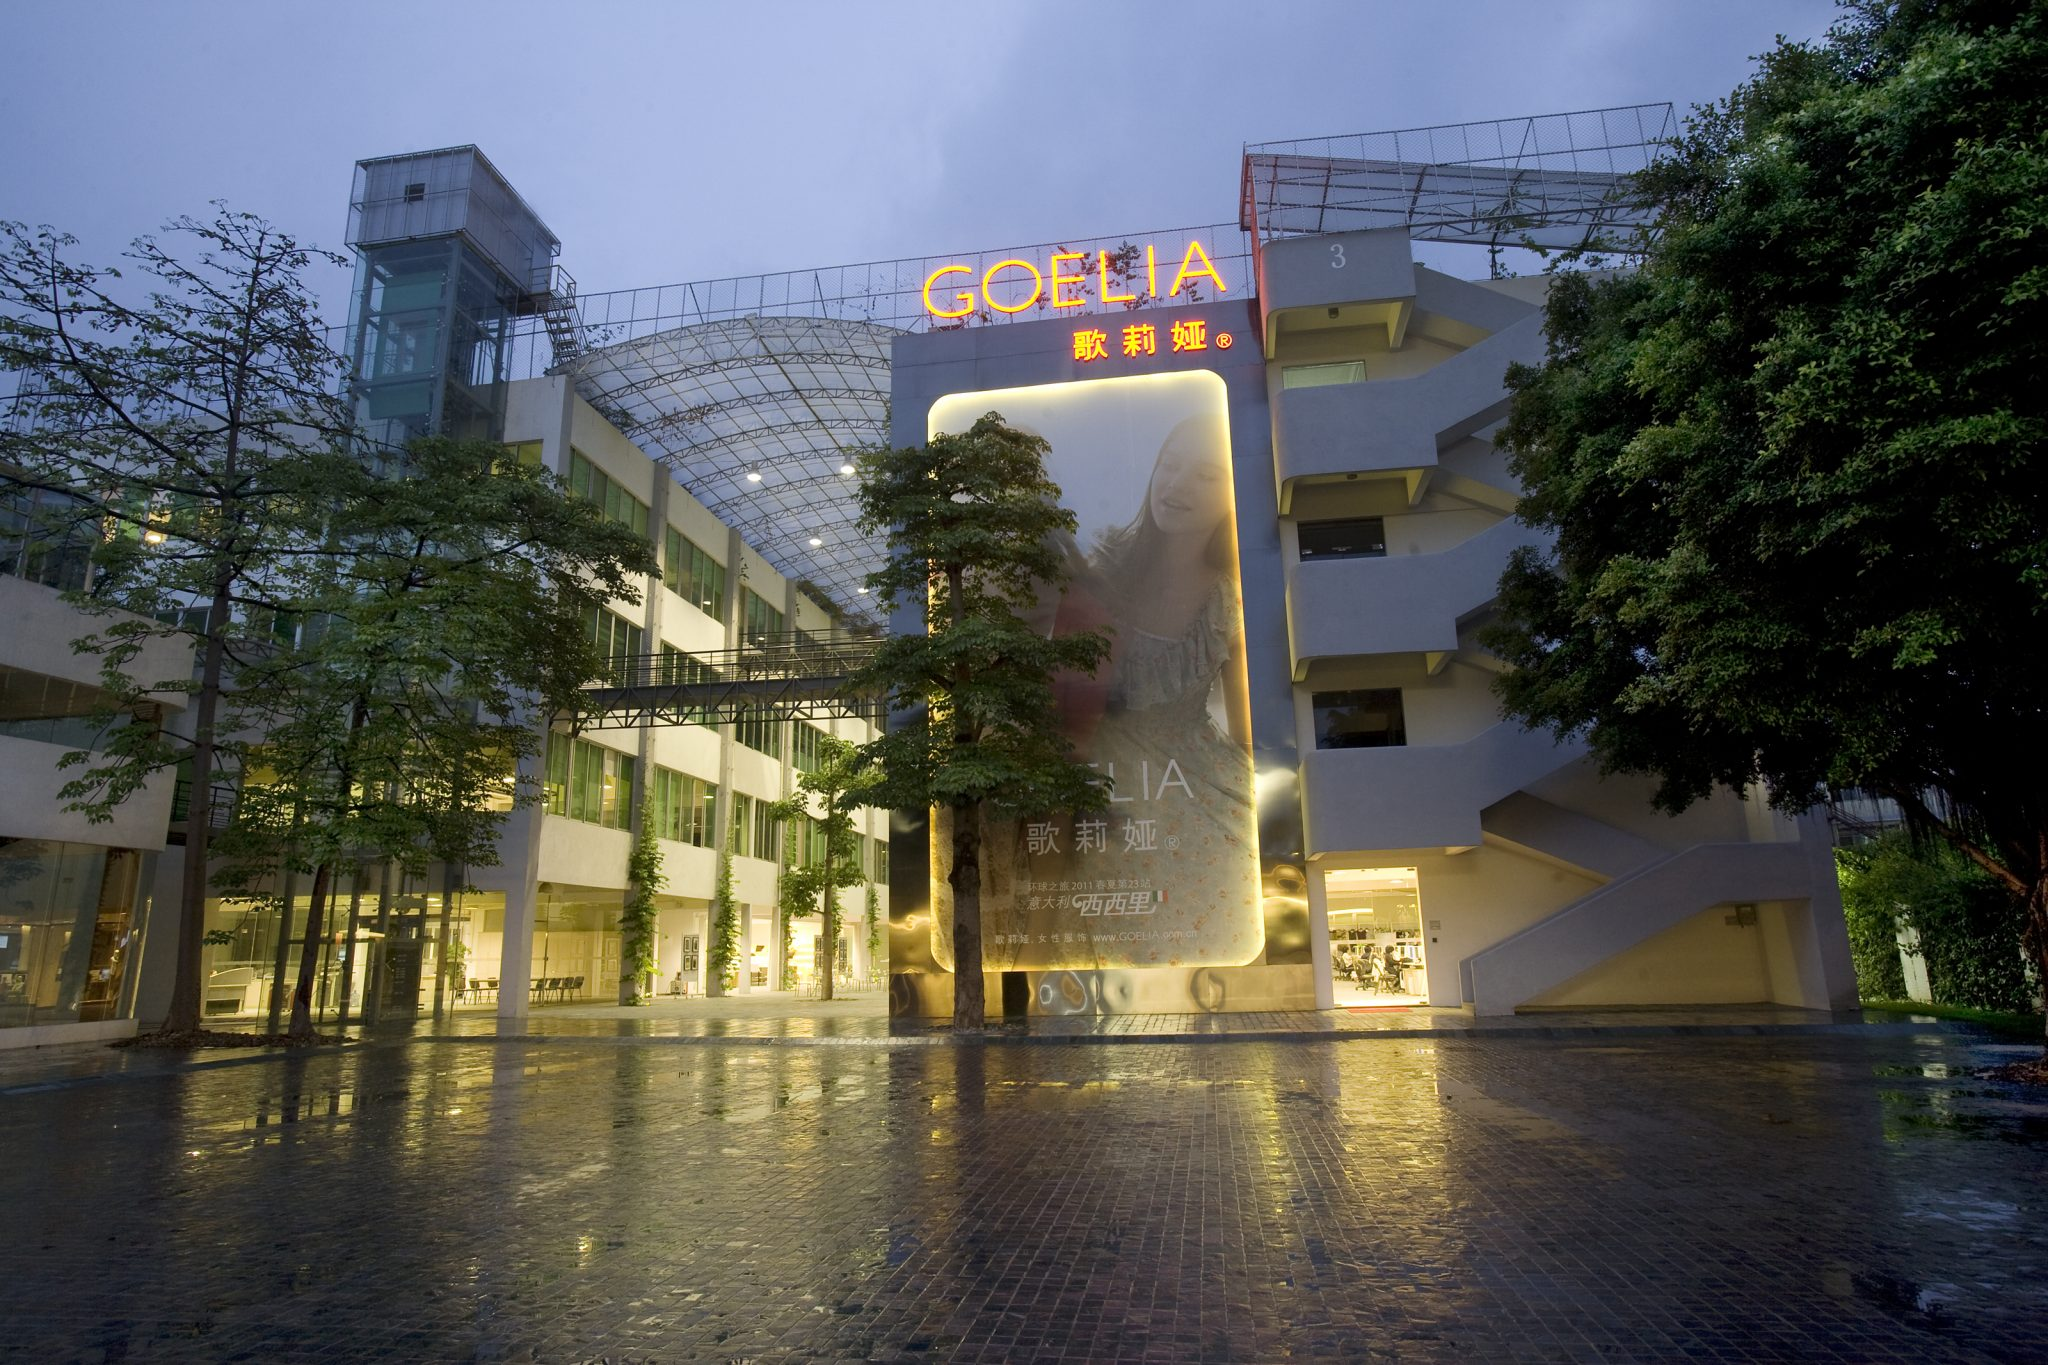 Goelia Headquarters – Guangzhou, China